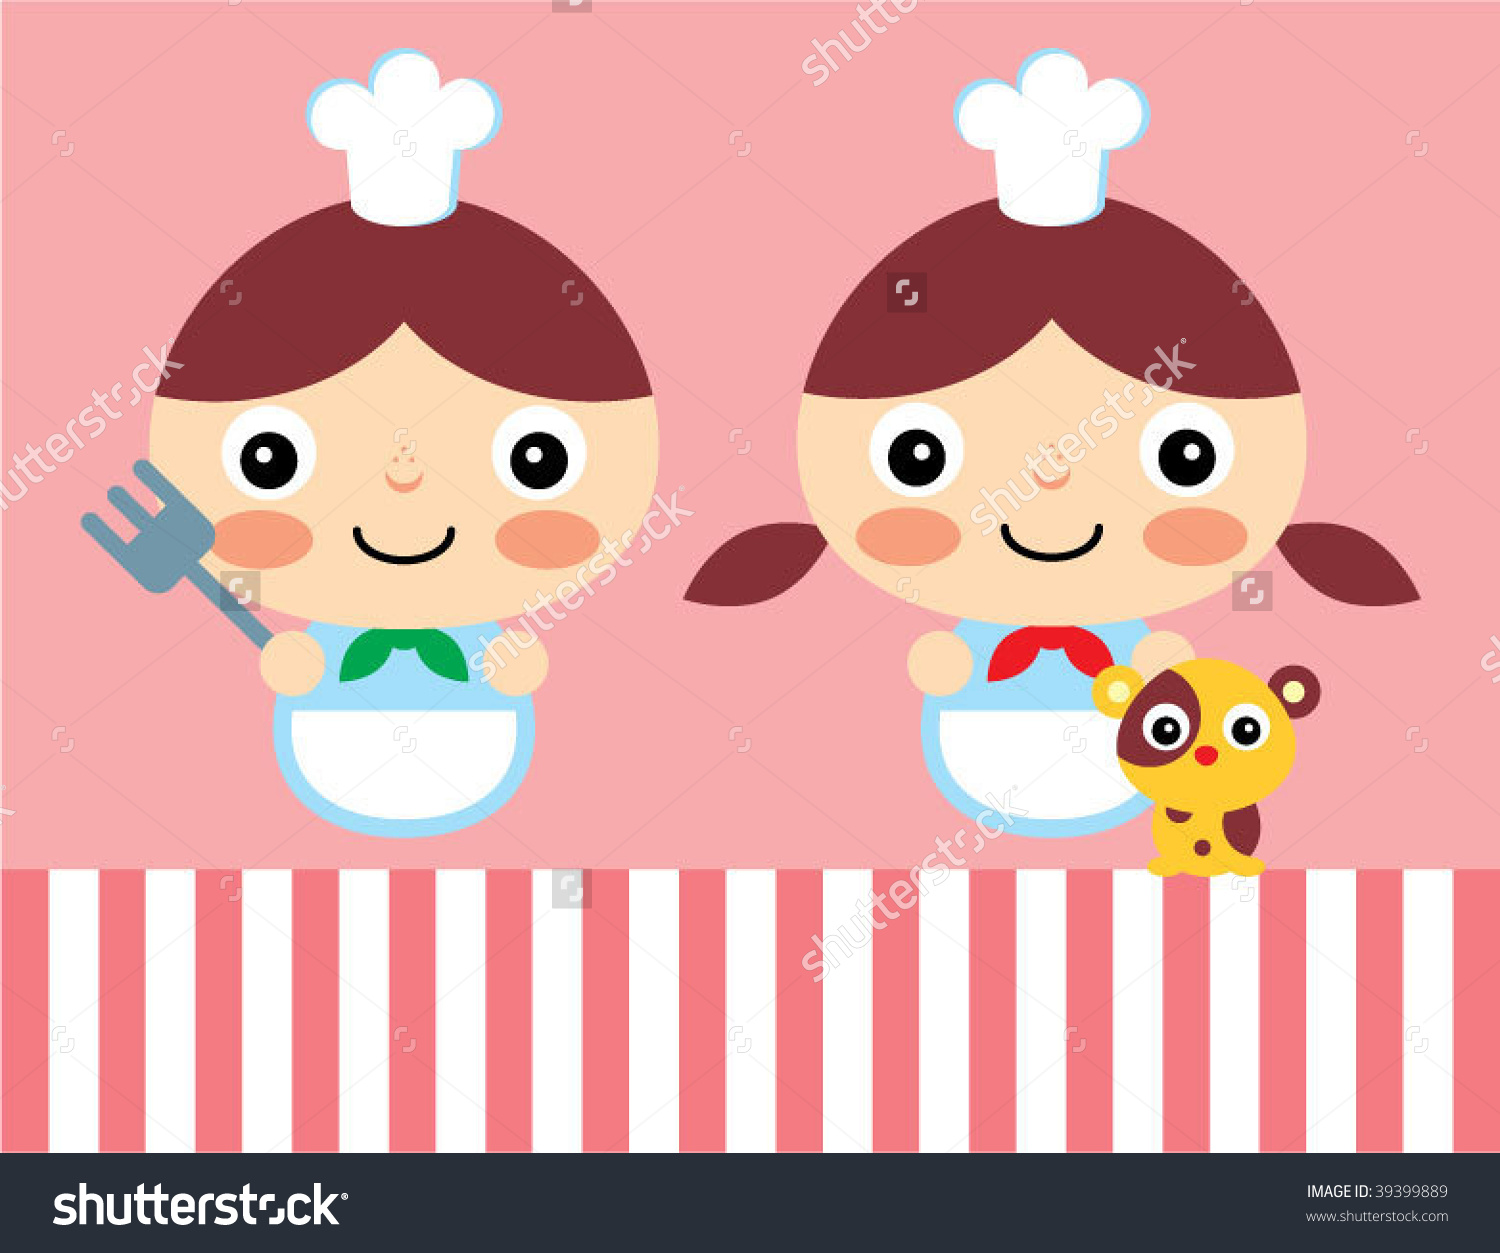 Little chef clipart clip art royalty free library Little Chef Couple Stock Vector 39399889 - Shutterstock clip art royalty free library